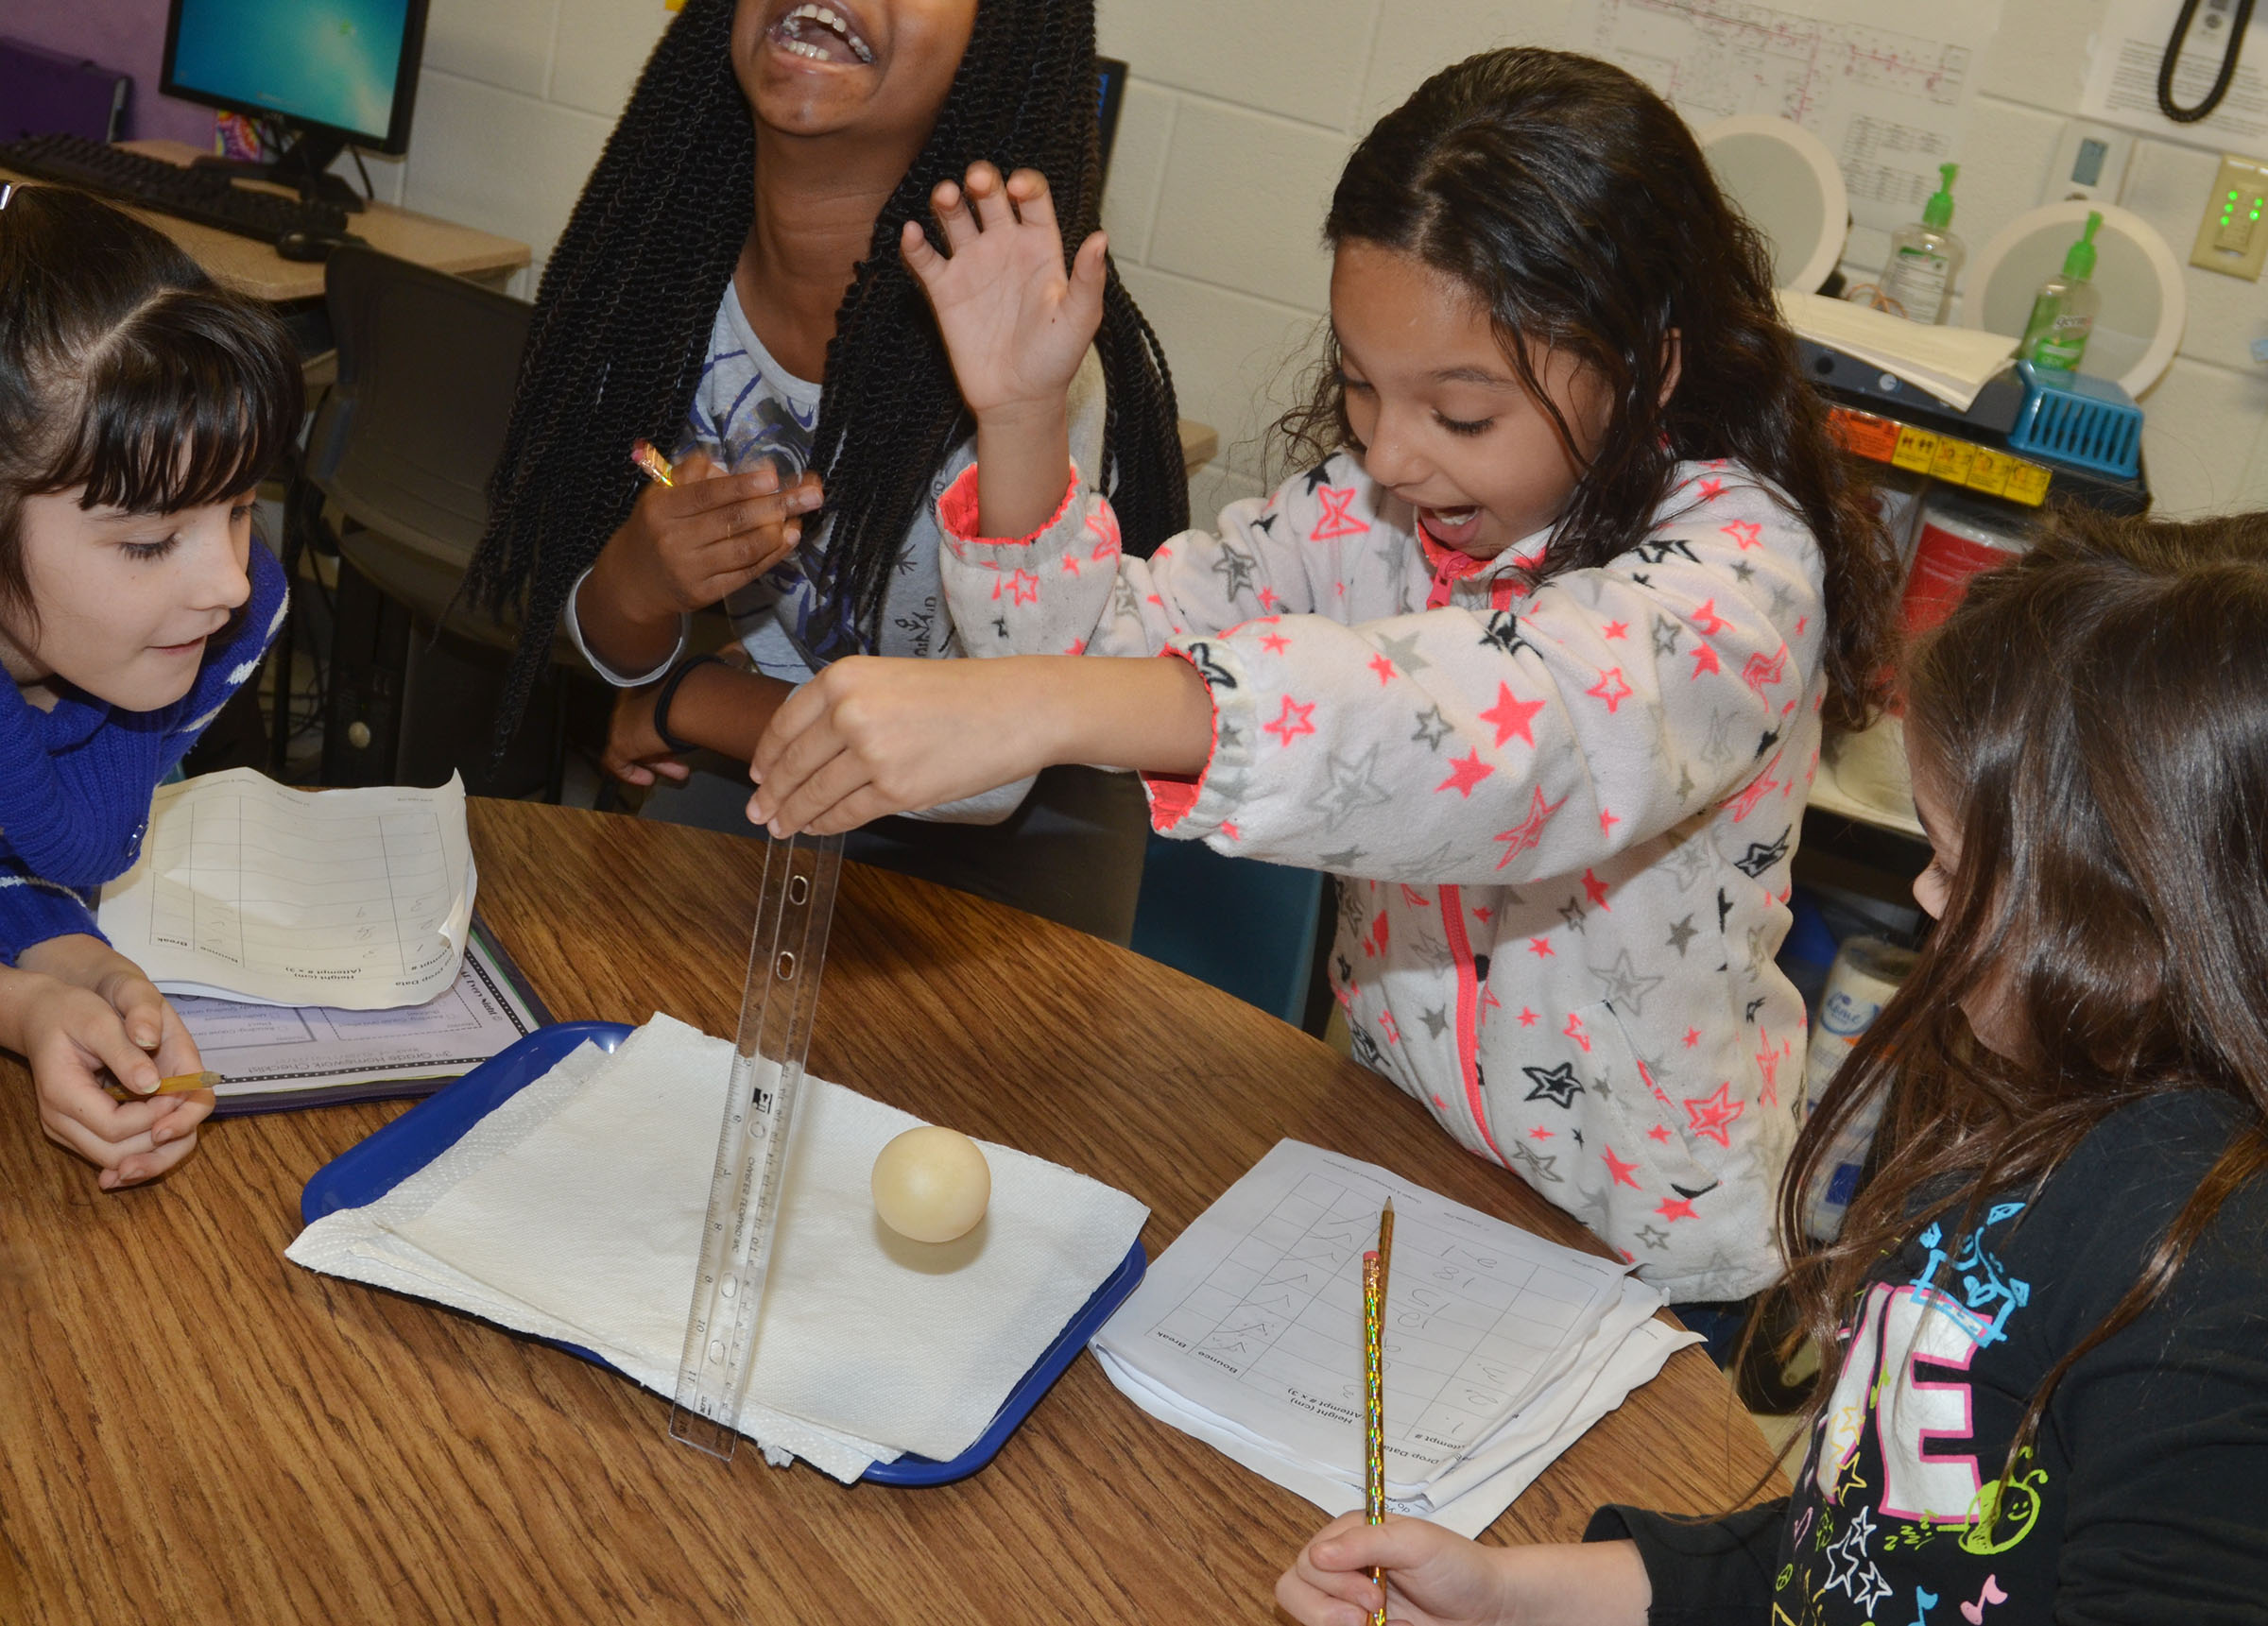 CES third-grader Alyssa Knezevic drops her egg to see if it will break.